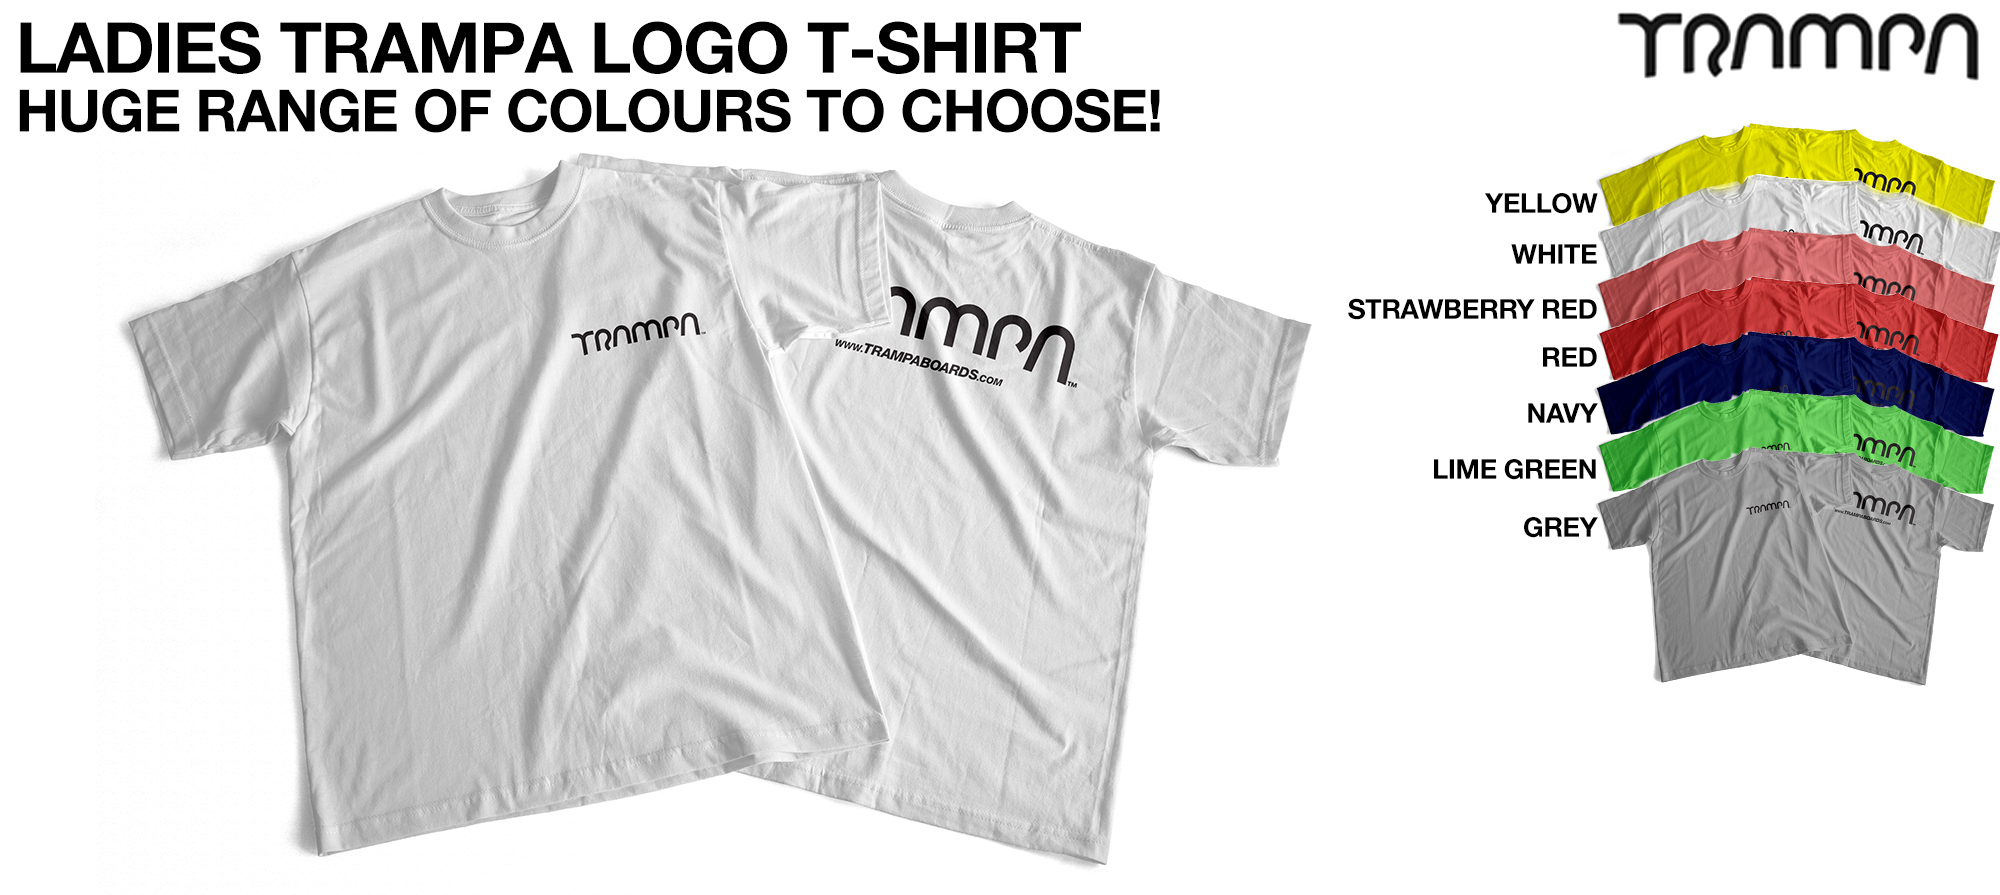 Ladies TRAMPA LOGO T-Shirt - Huge choice of colours!